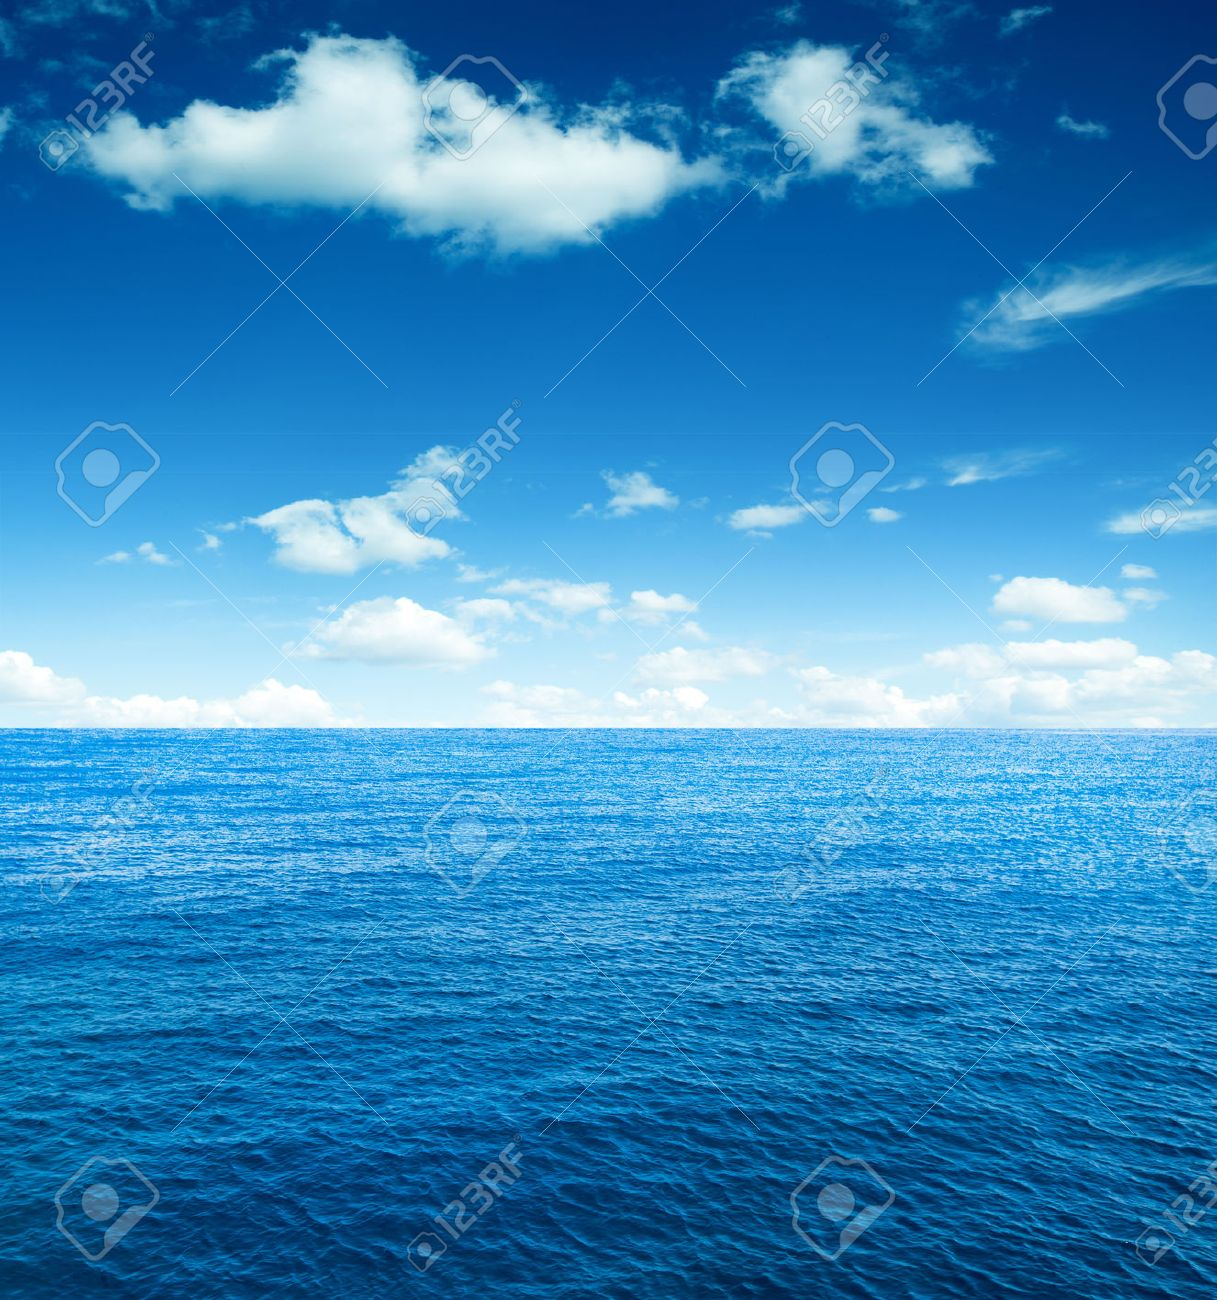 perfect sky and ocean - 37912946